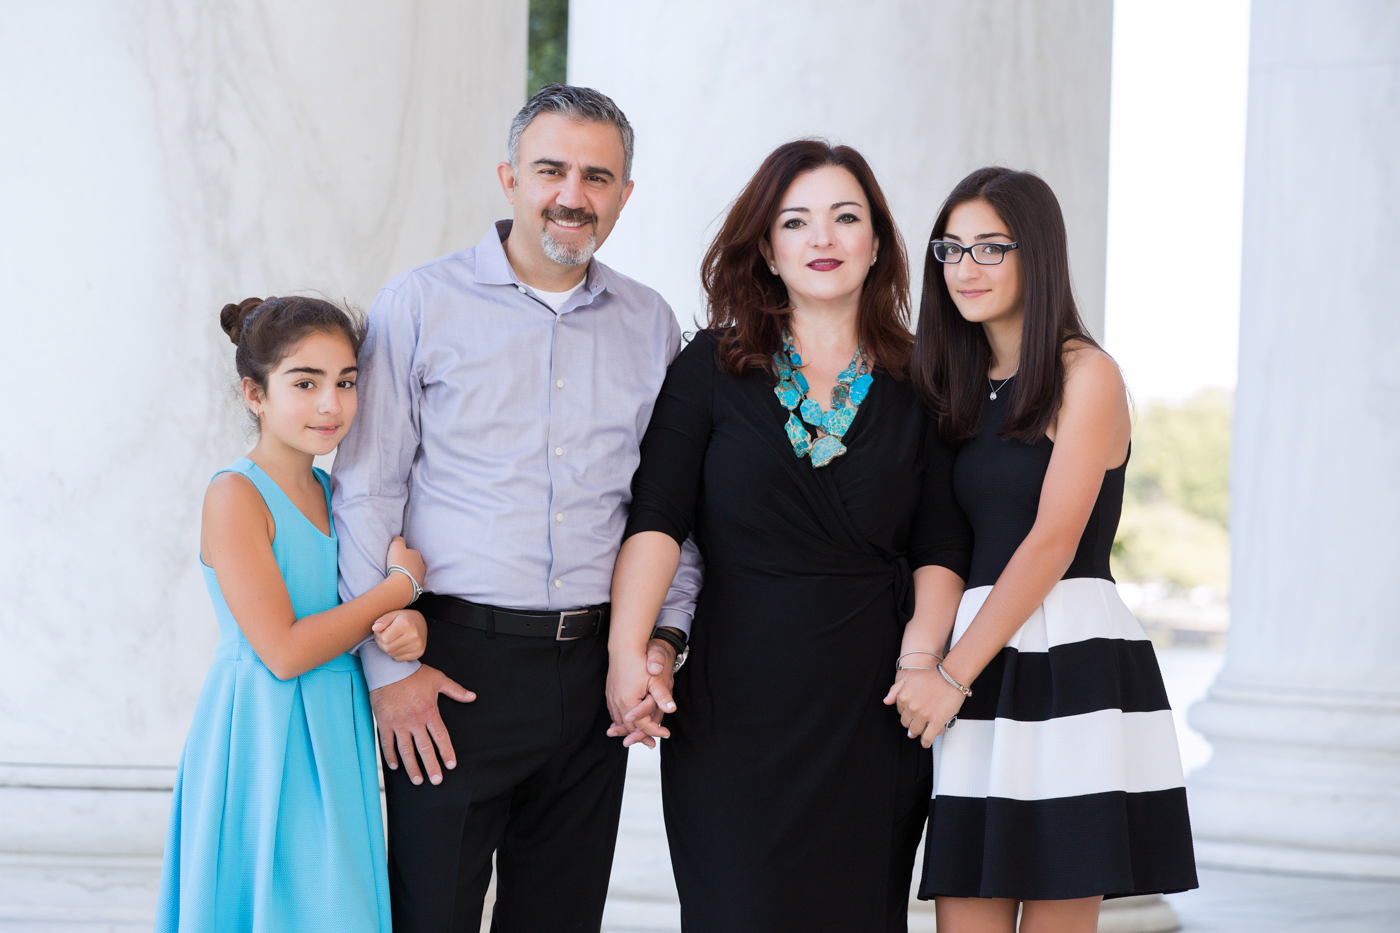 early-fall-family-shoot-in-washington-dc-ksenia-pro-photography-31